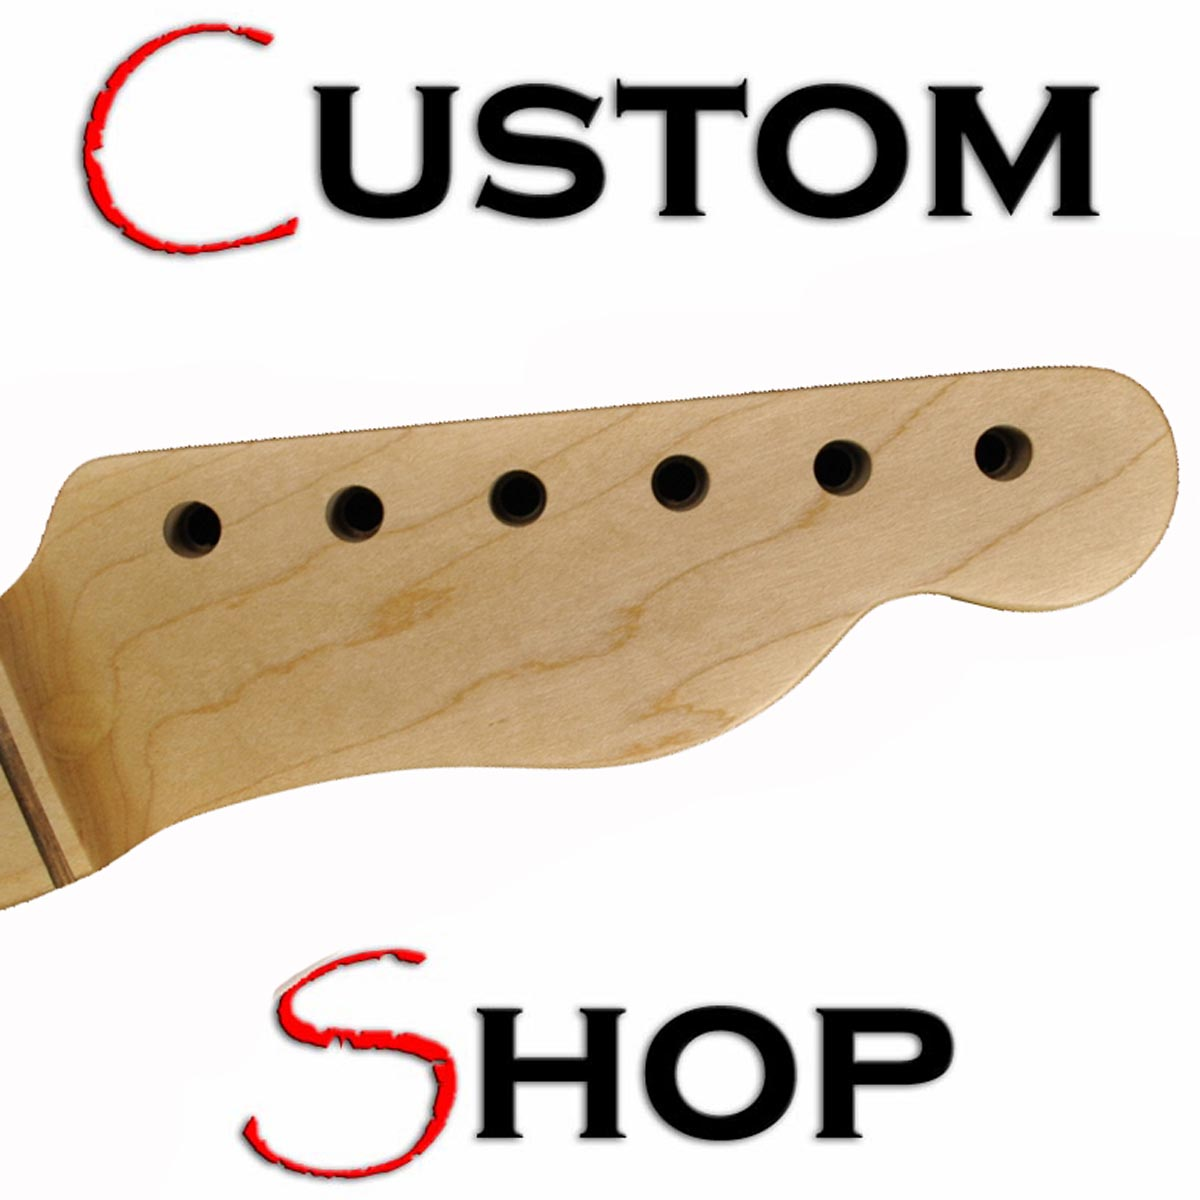 CUSTOM SHOP Aged Telecaster BLACKGUARD Replacement Neck